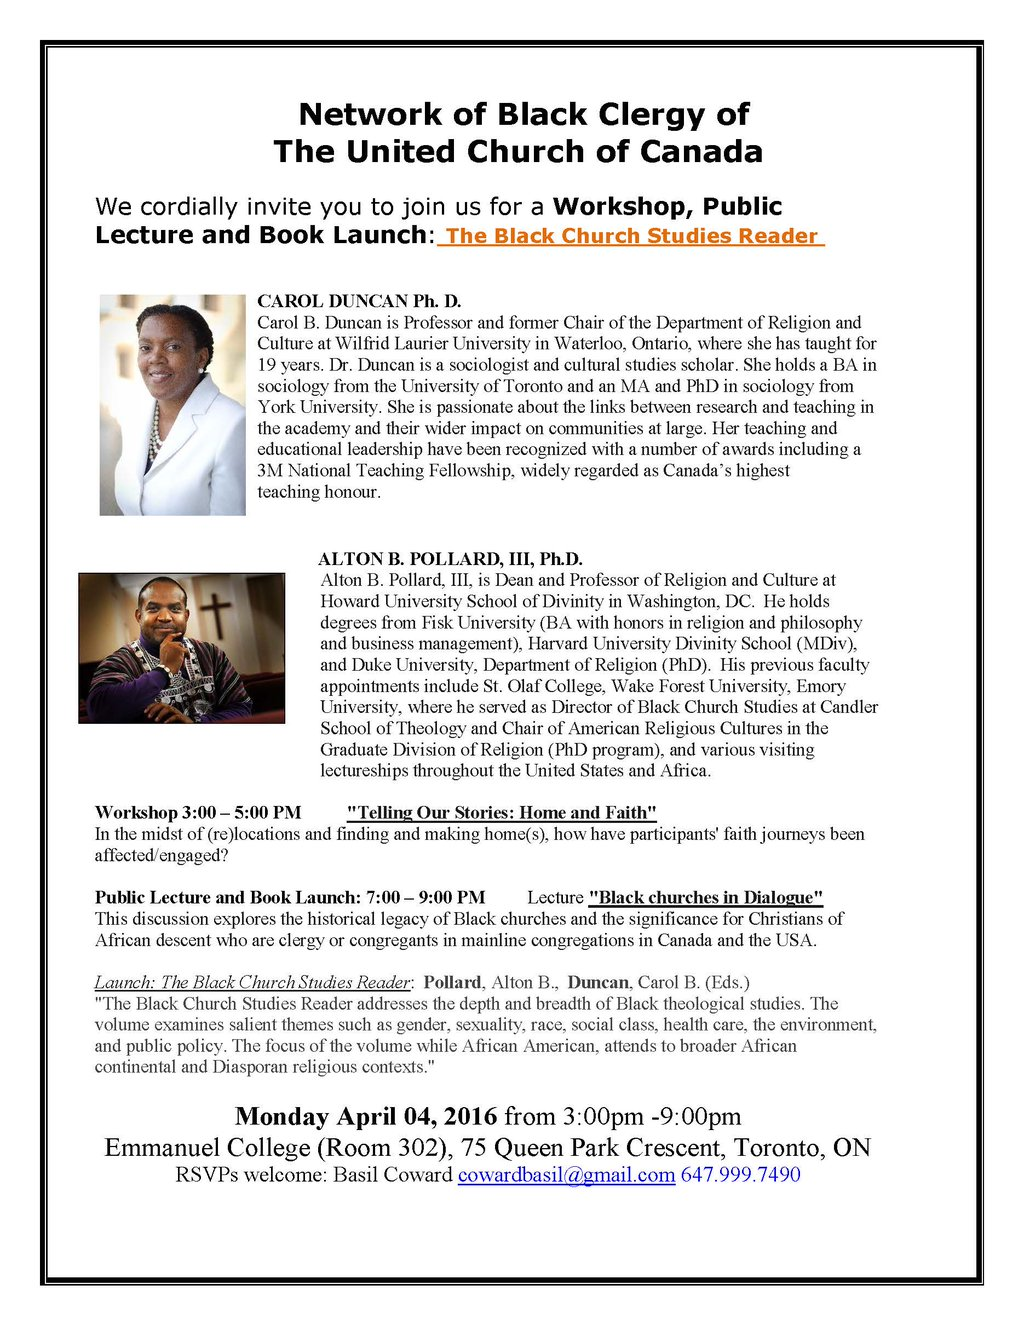 Network of Black Clergy of UCC Workshop, Lecture, Book Launch